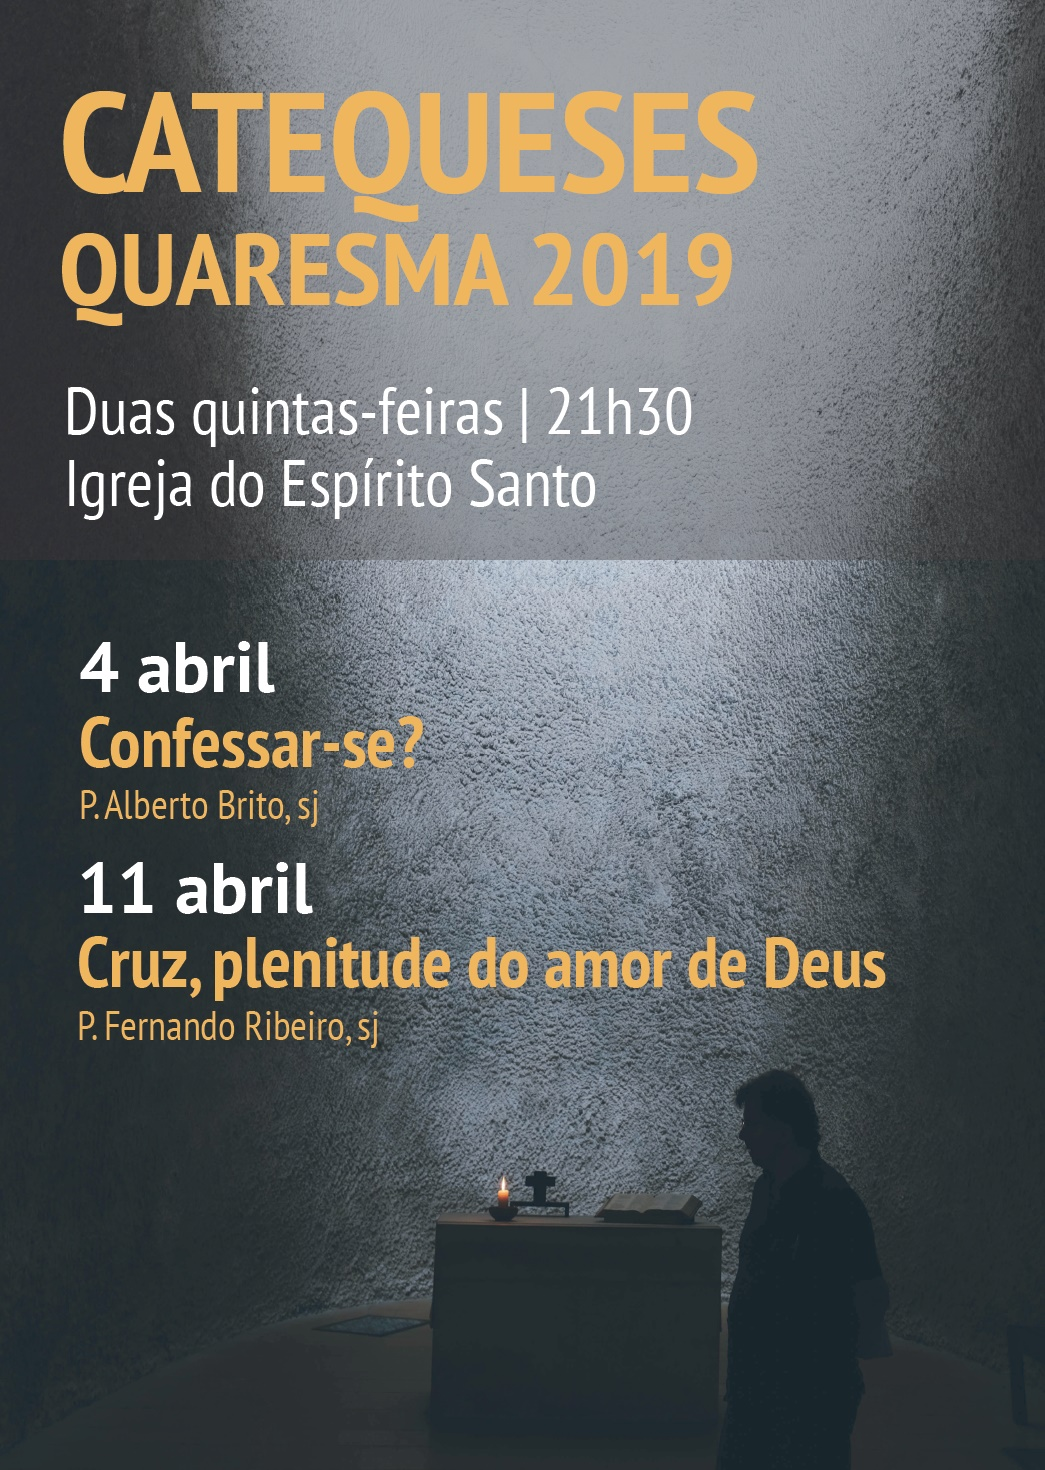 CATEQUESES-QUARESMA_2019